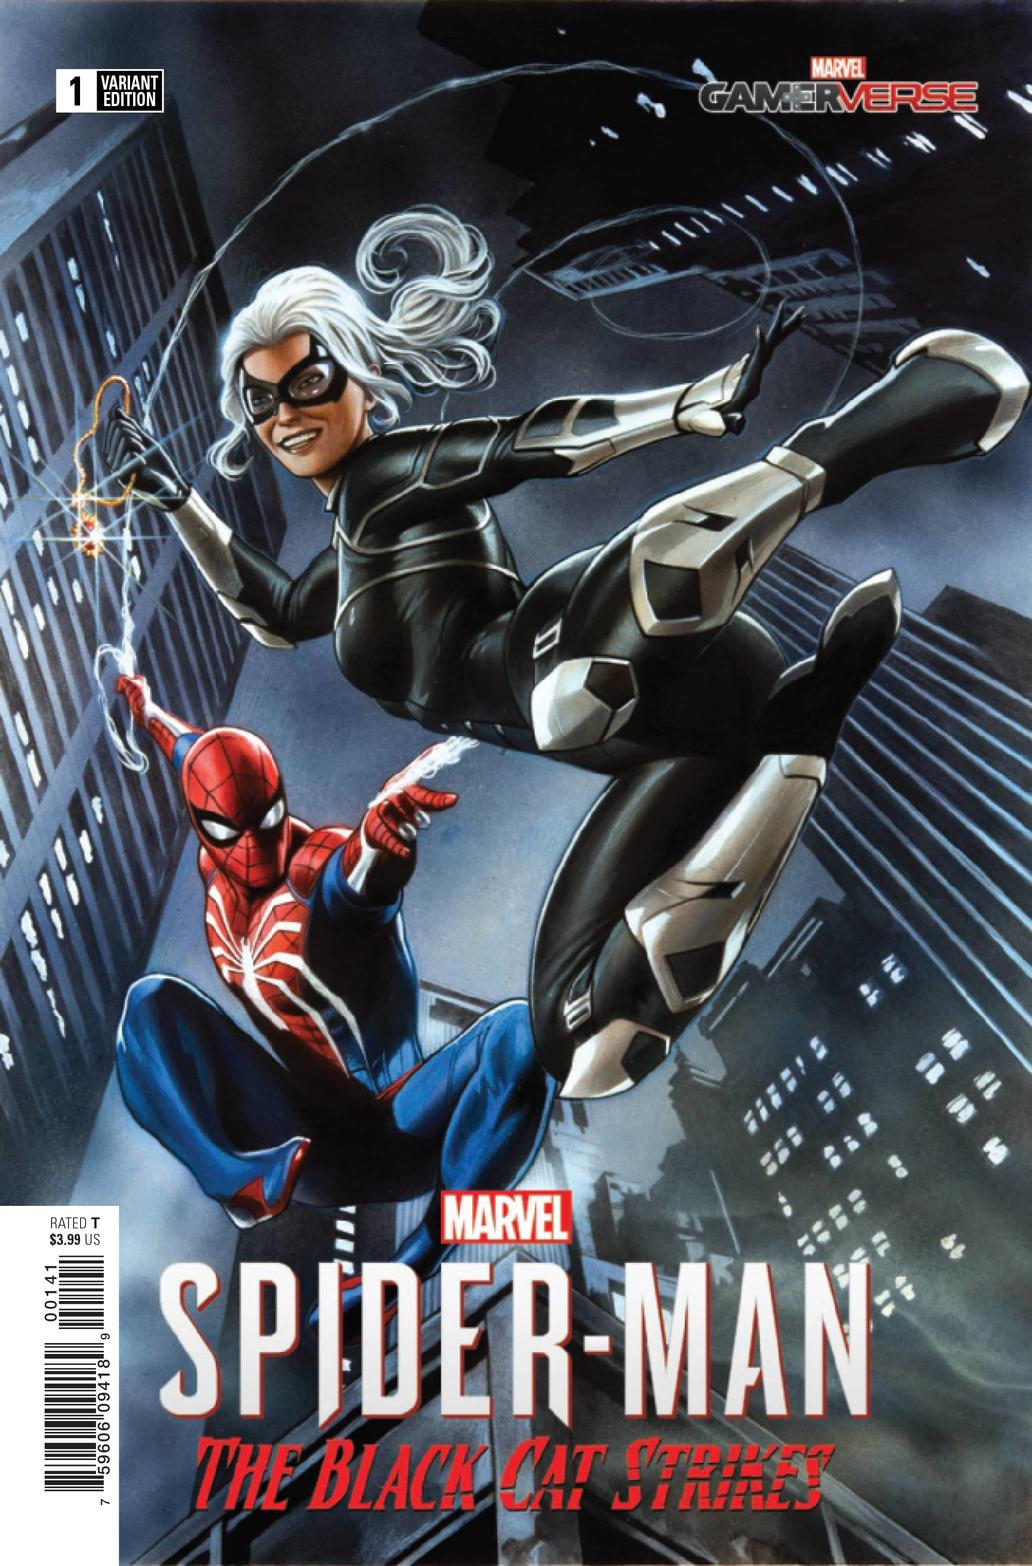 MARVEL'S SPIDER-MAN: THE BLACK CAT STRIKES #1 — Game Variant Cover by Adi Granov